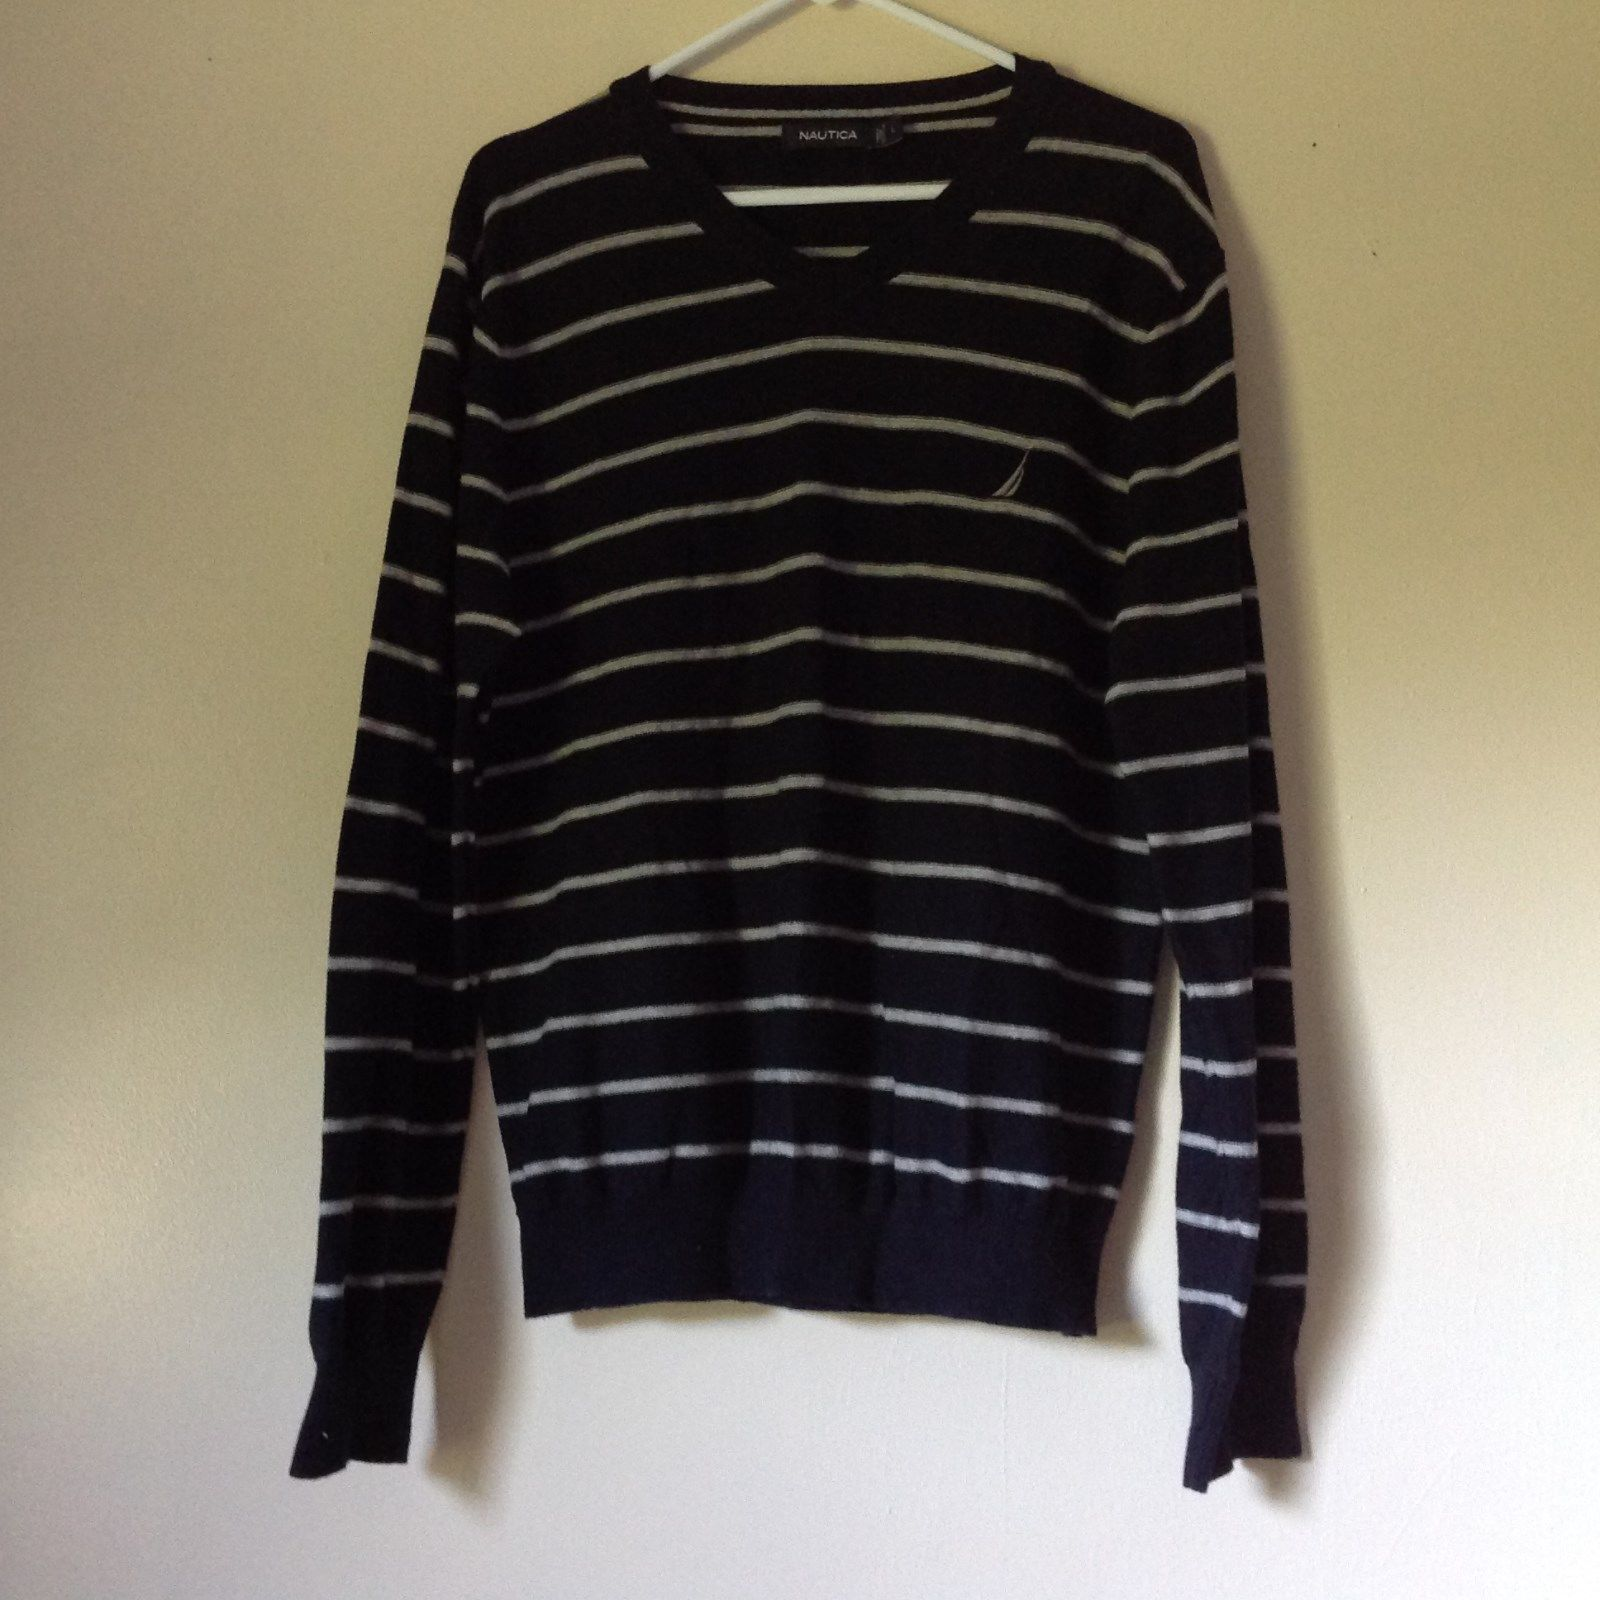 Long Sleeve Nautica Black and White Striped V Neck Sweater Size Large